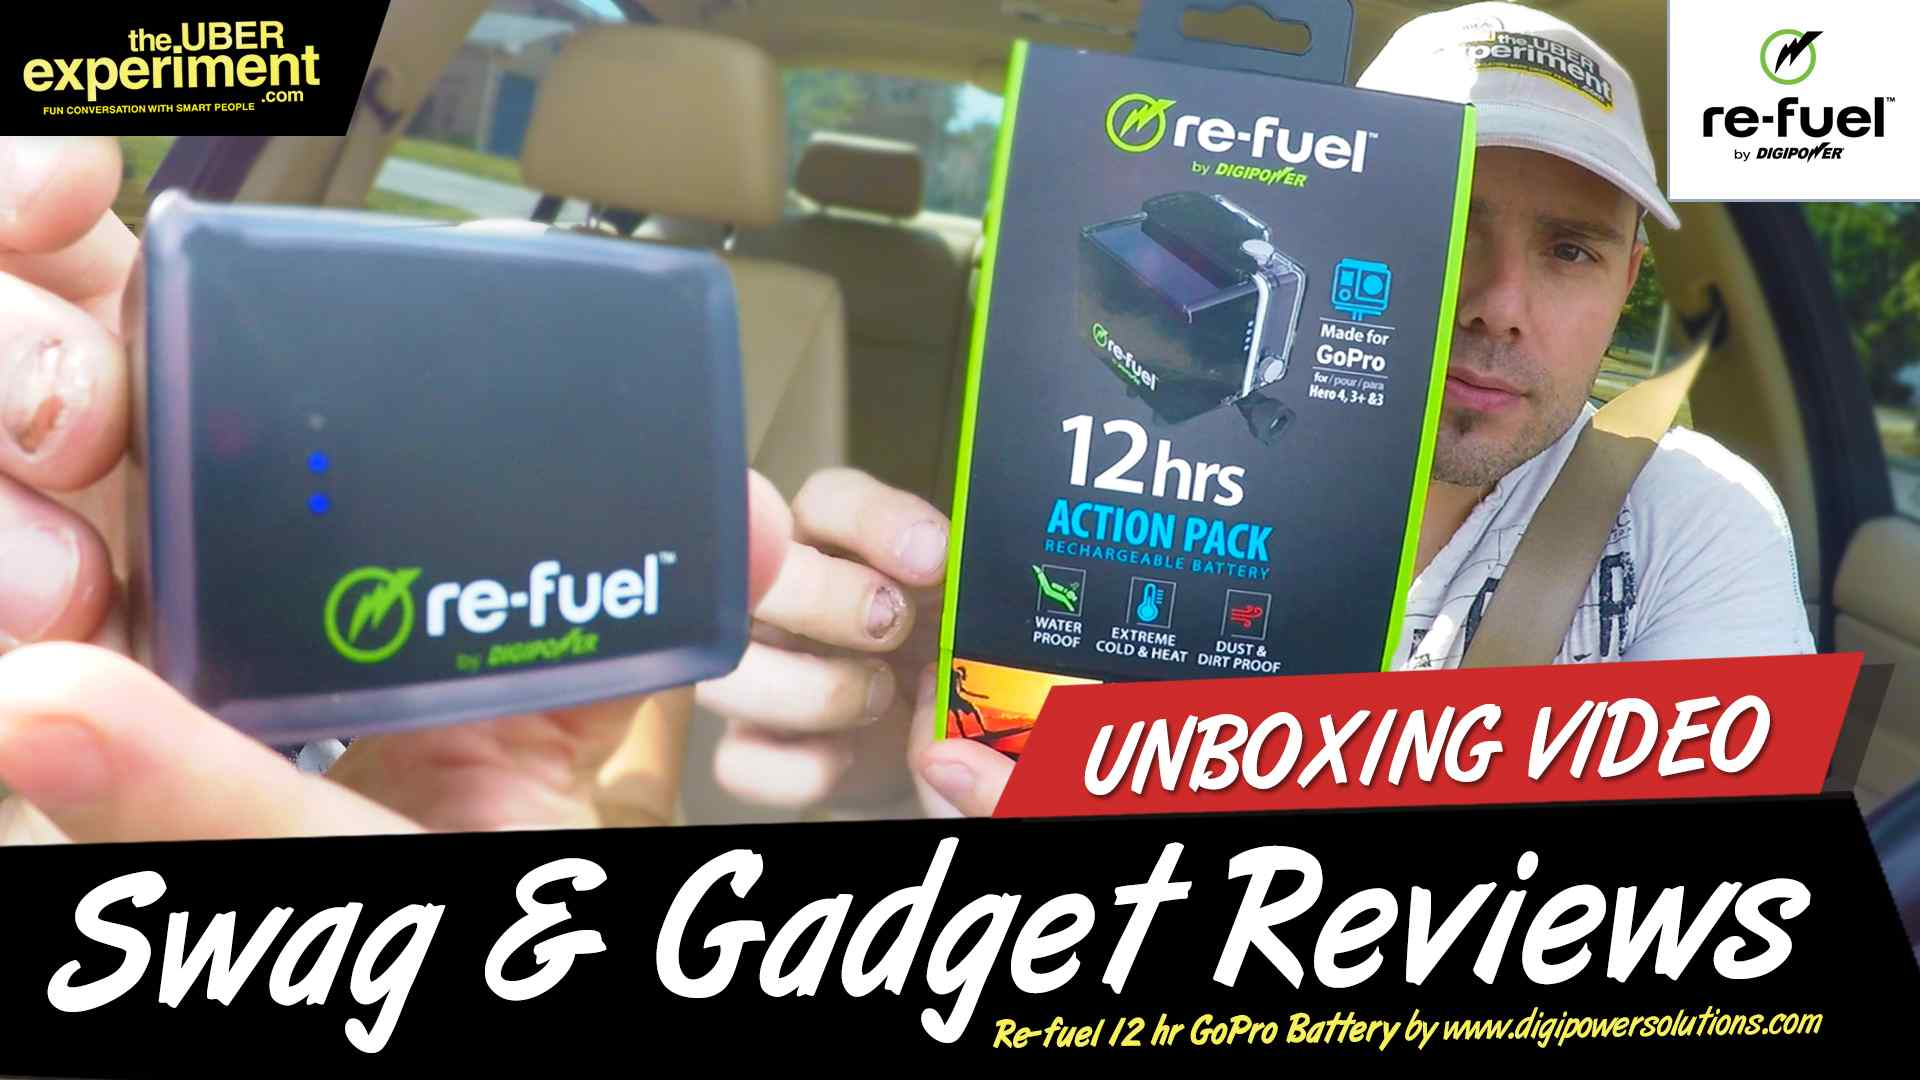 GoPRO 3, 3+, GoPro 4 Re-FUEL 12 Hr Extended Action Pack Battery Unboxing & Gadget Review